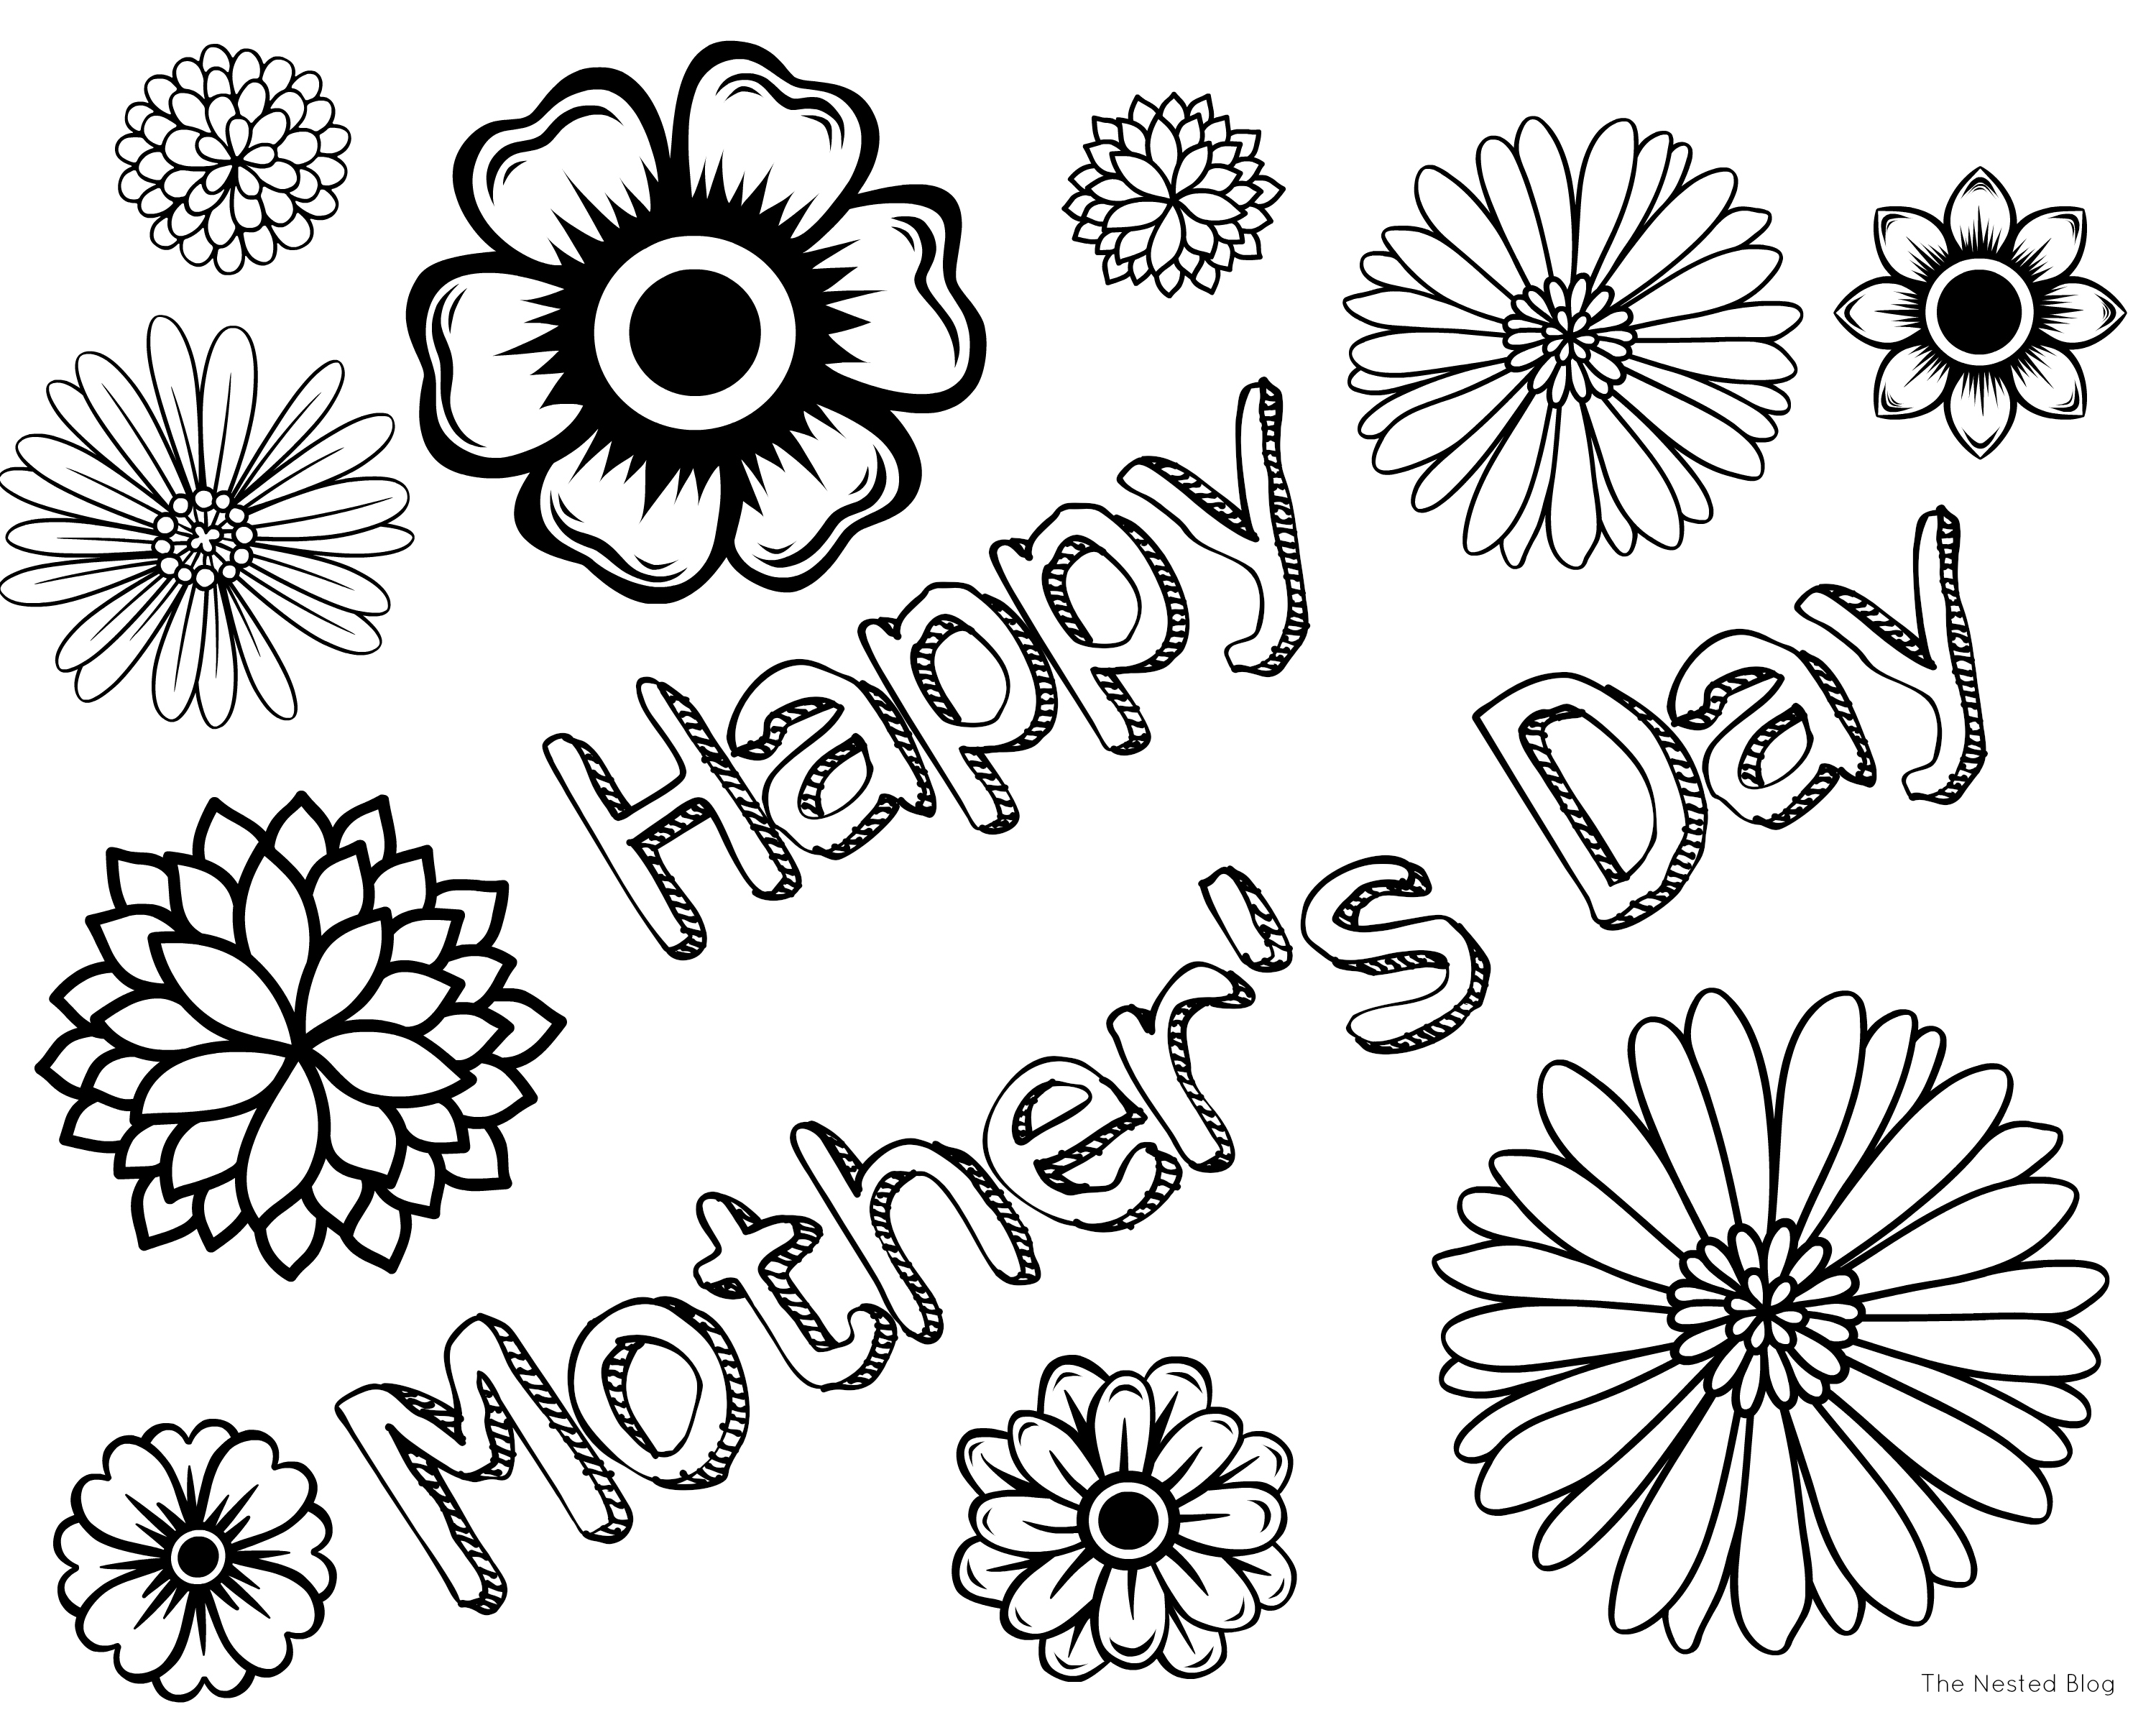 Mothers day colouring pictures to print - Mothers Day Coloring Pages